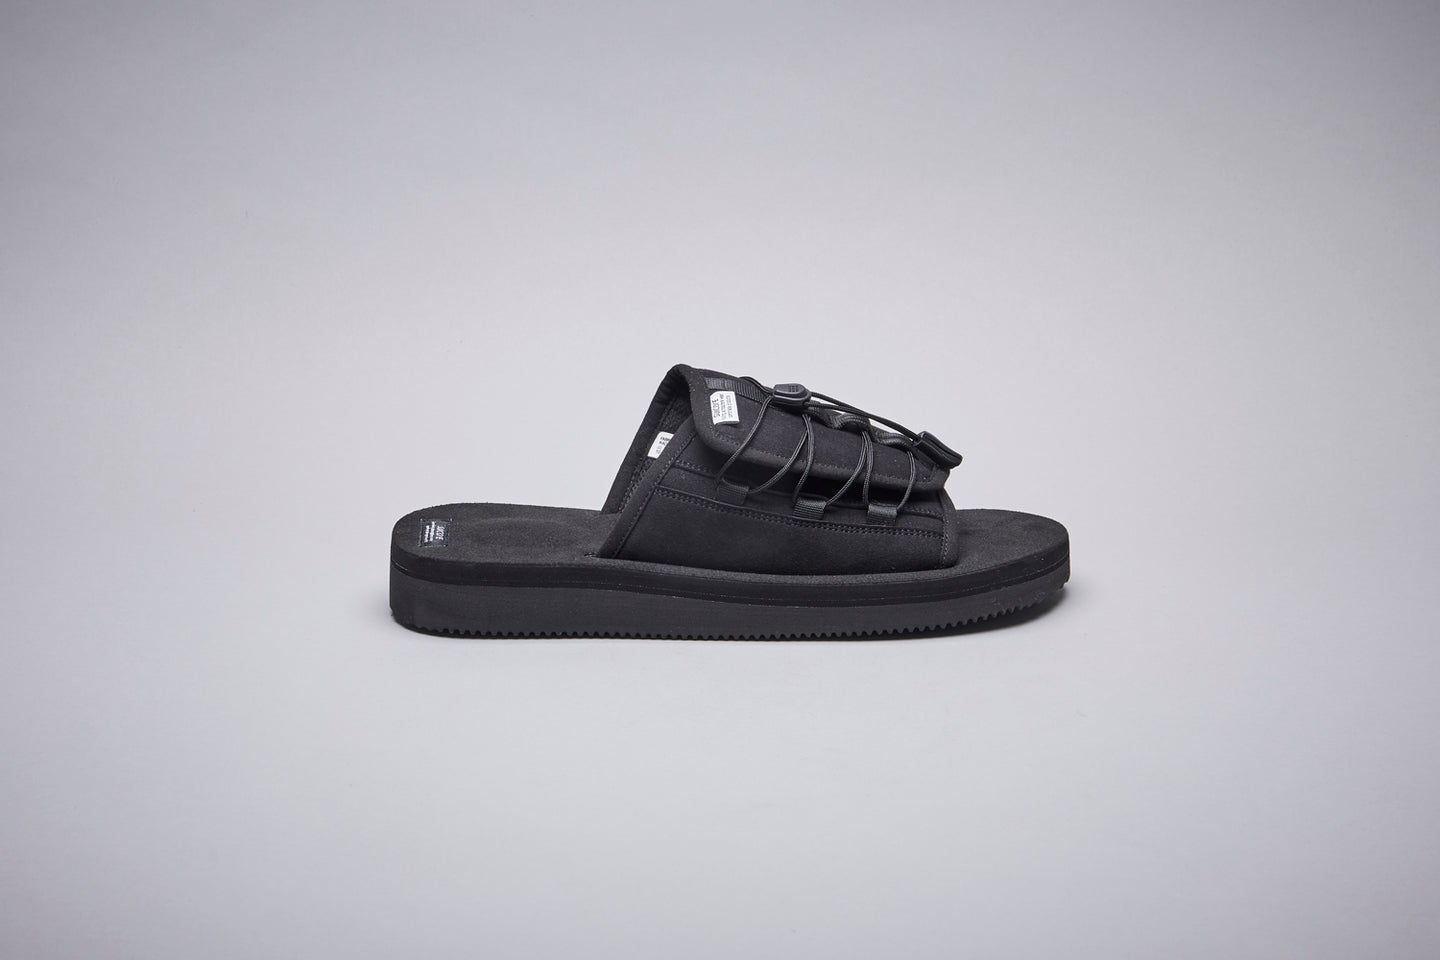 SUICOKE-Sandals-OLAS-ECS - Black-OG-154-A Official Webstore Spring 2021